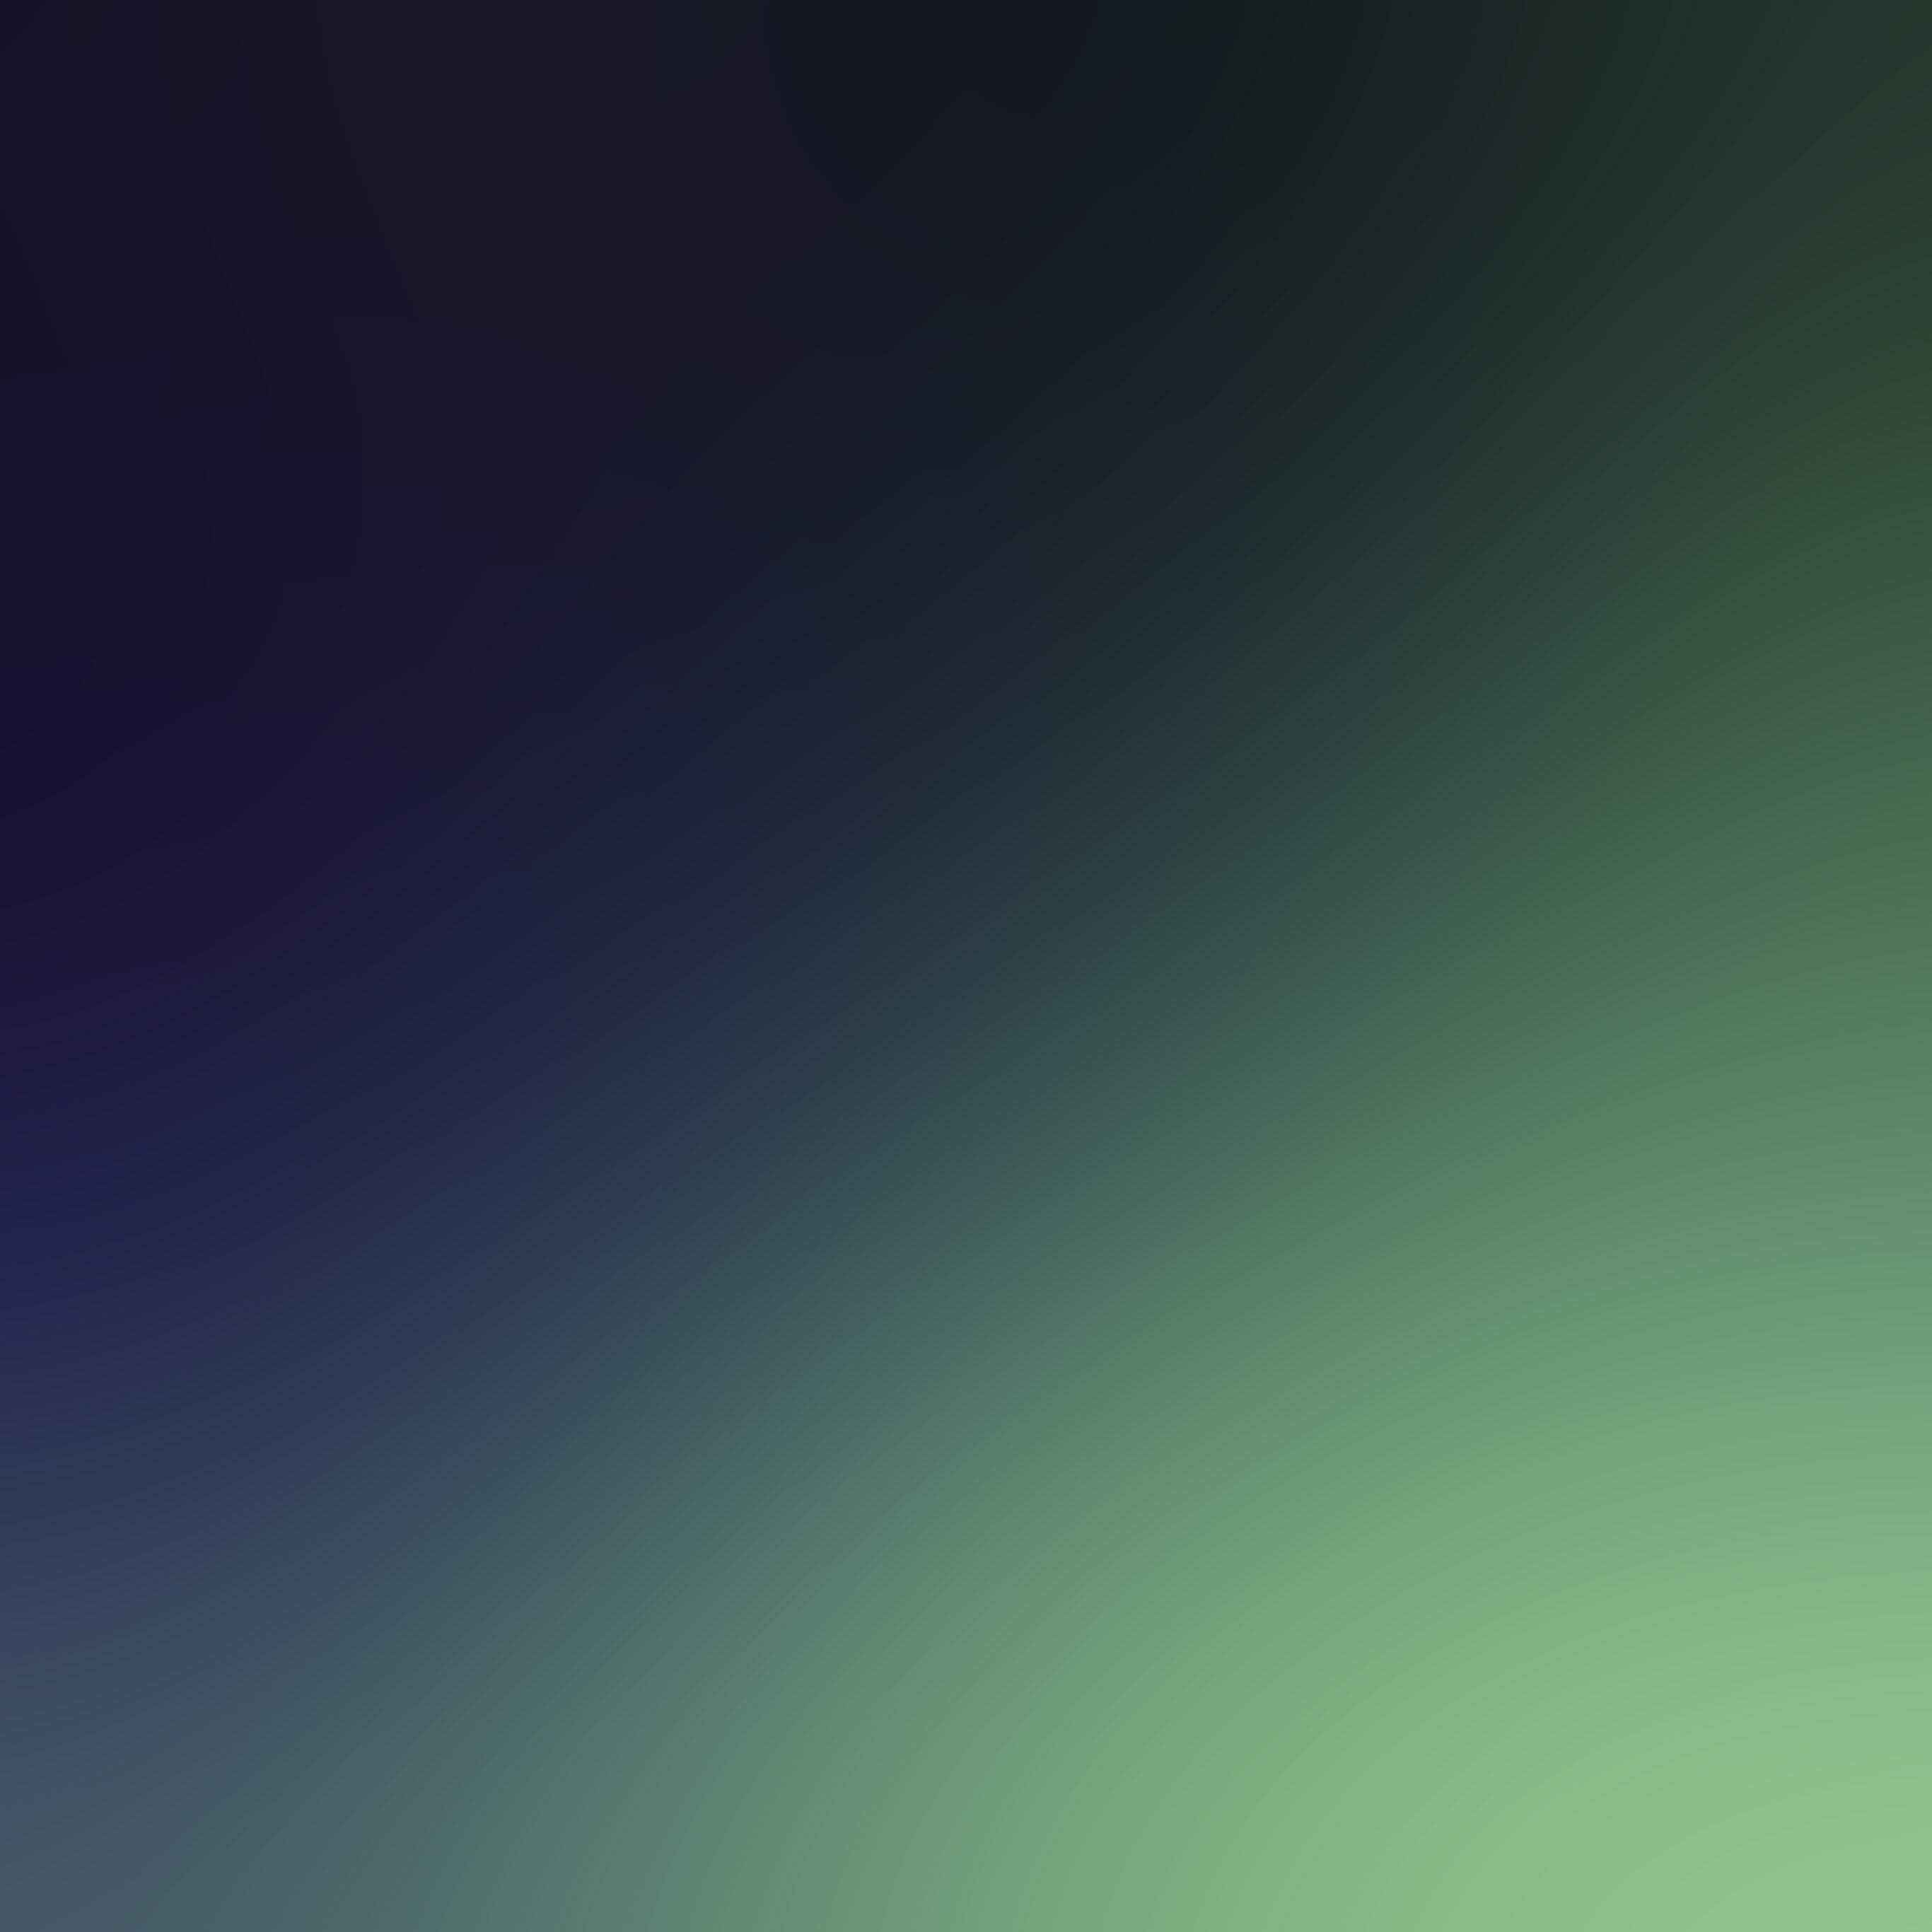 How To Make Wallpaper Fit On Iphone 6 Green Inspired Wallpapers For Ipad And Iphone Xs Max